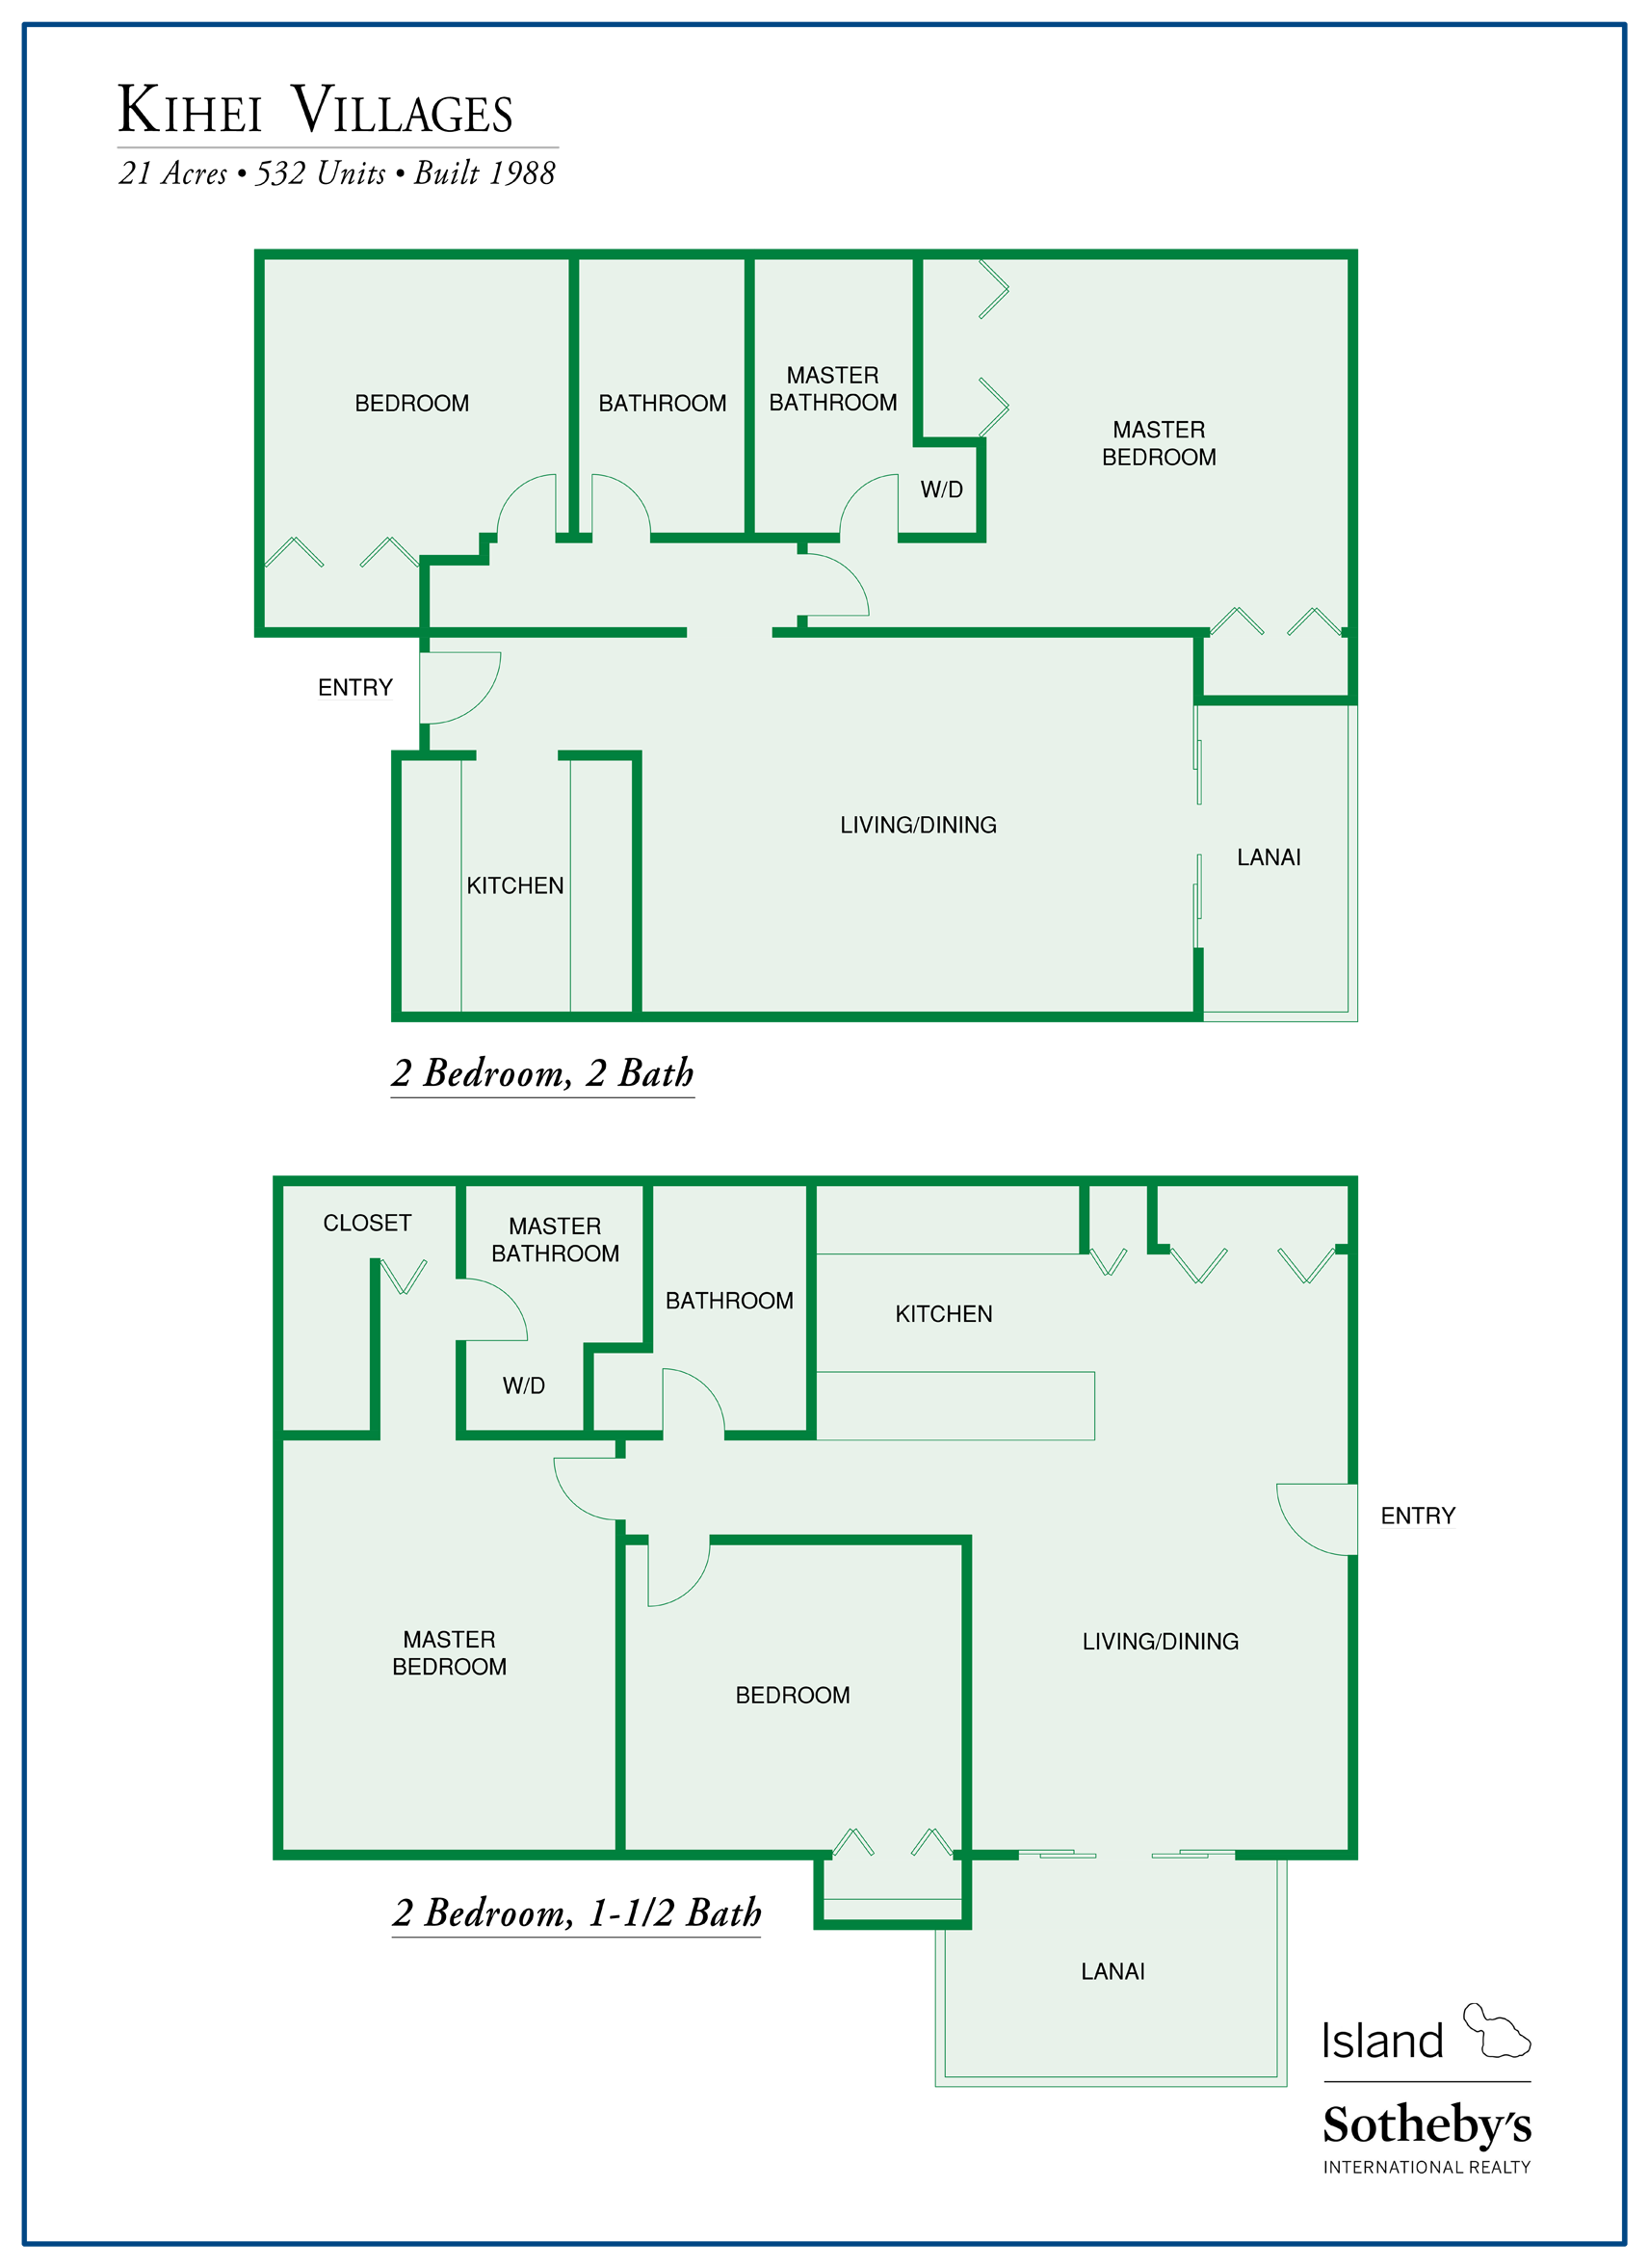 Kihei Villages Floor Plans